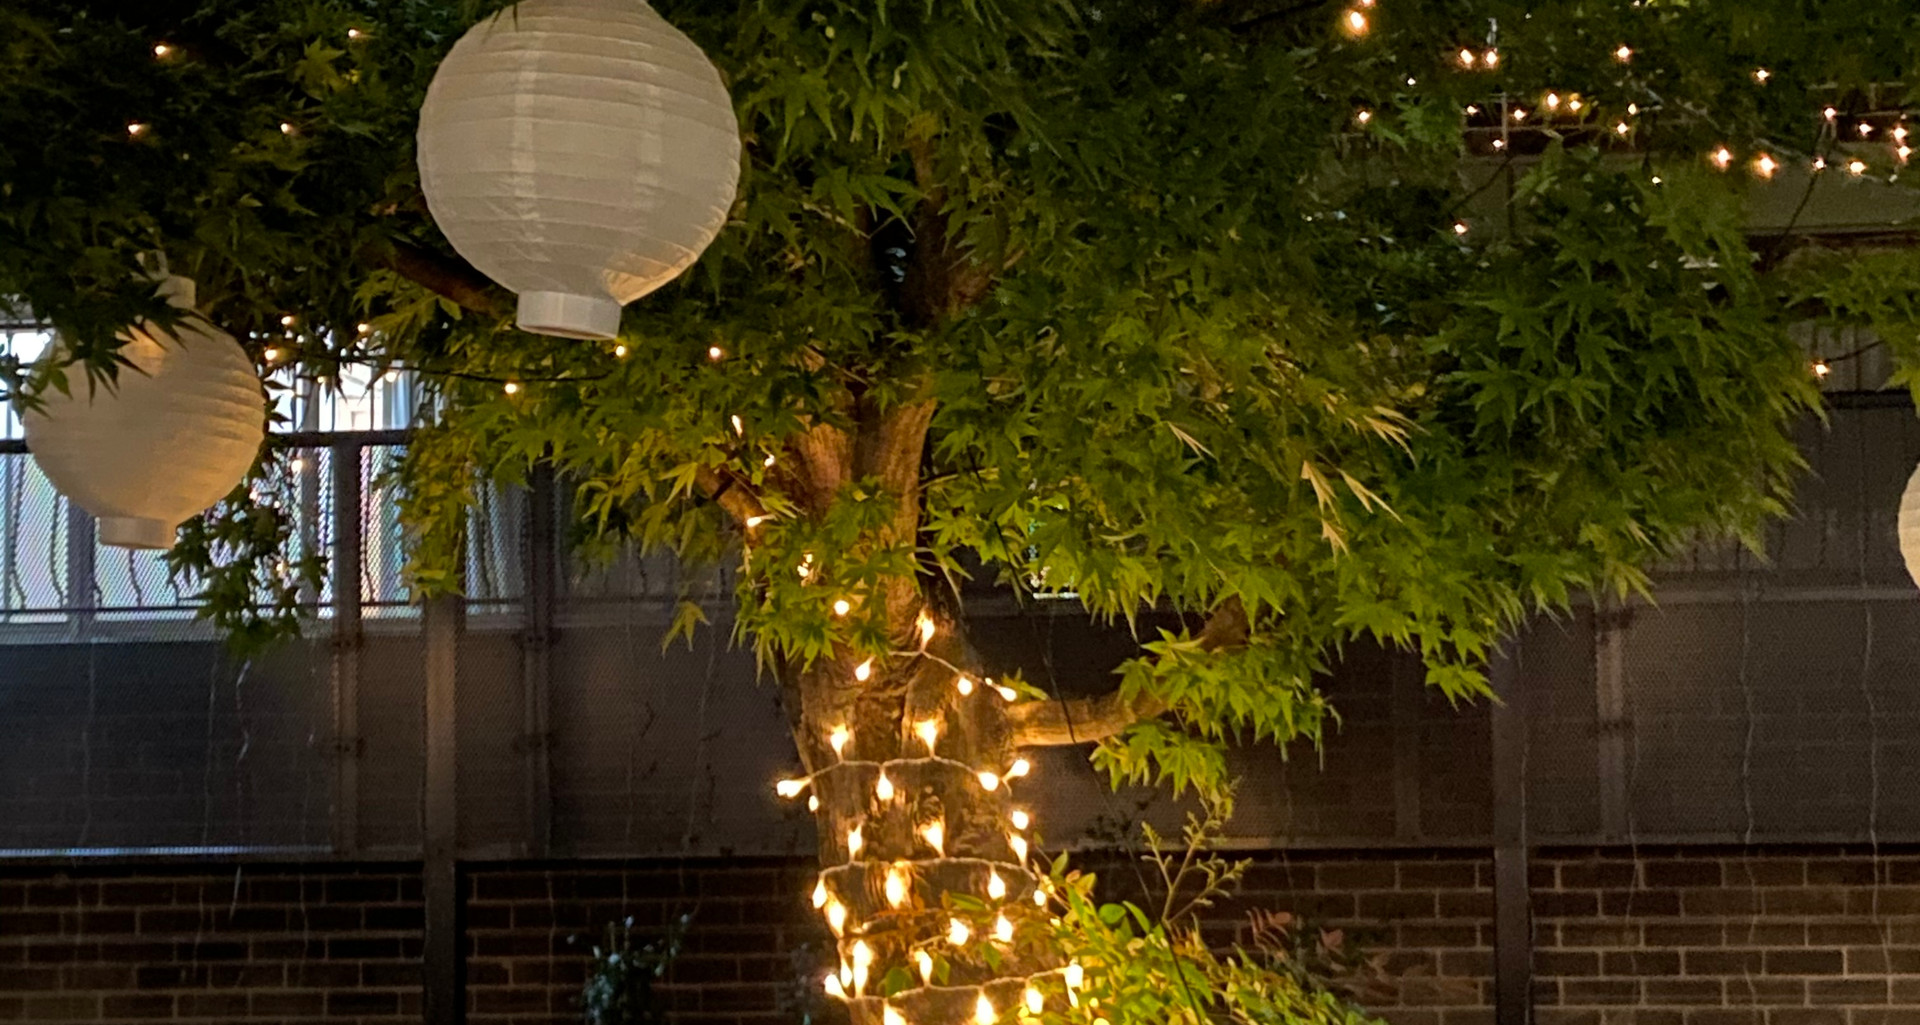 Tree with fairy lights and lanterns